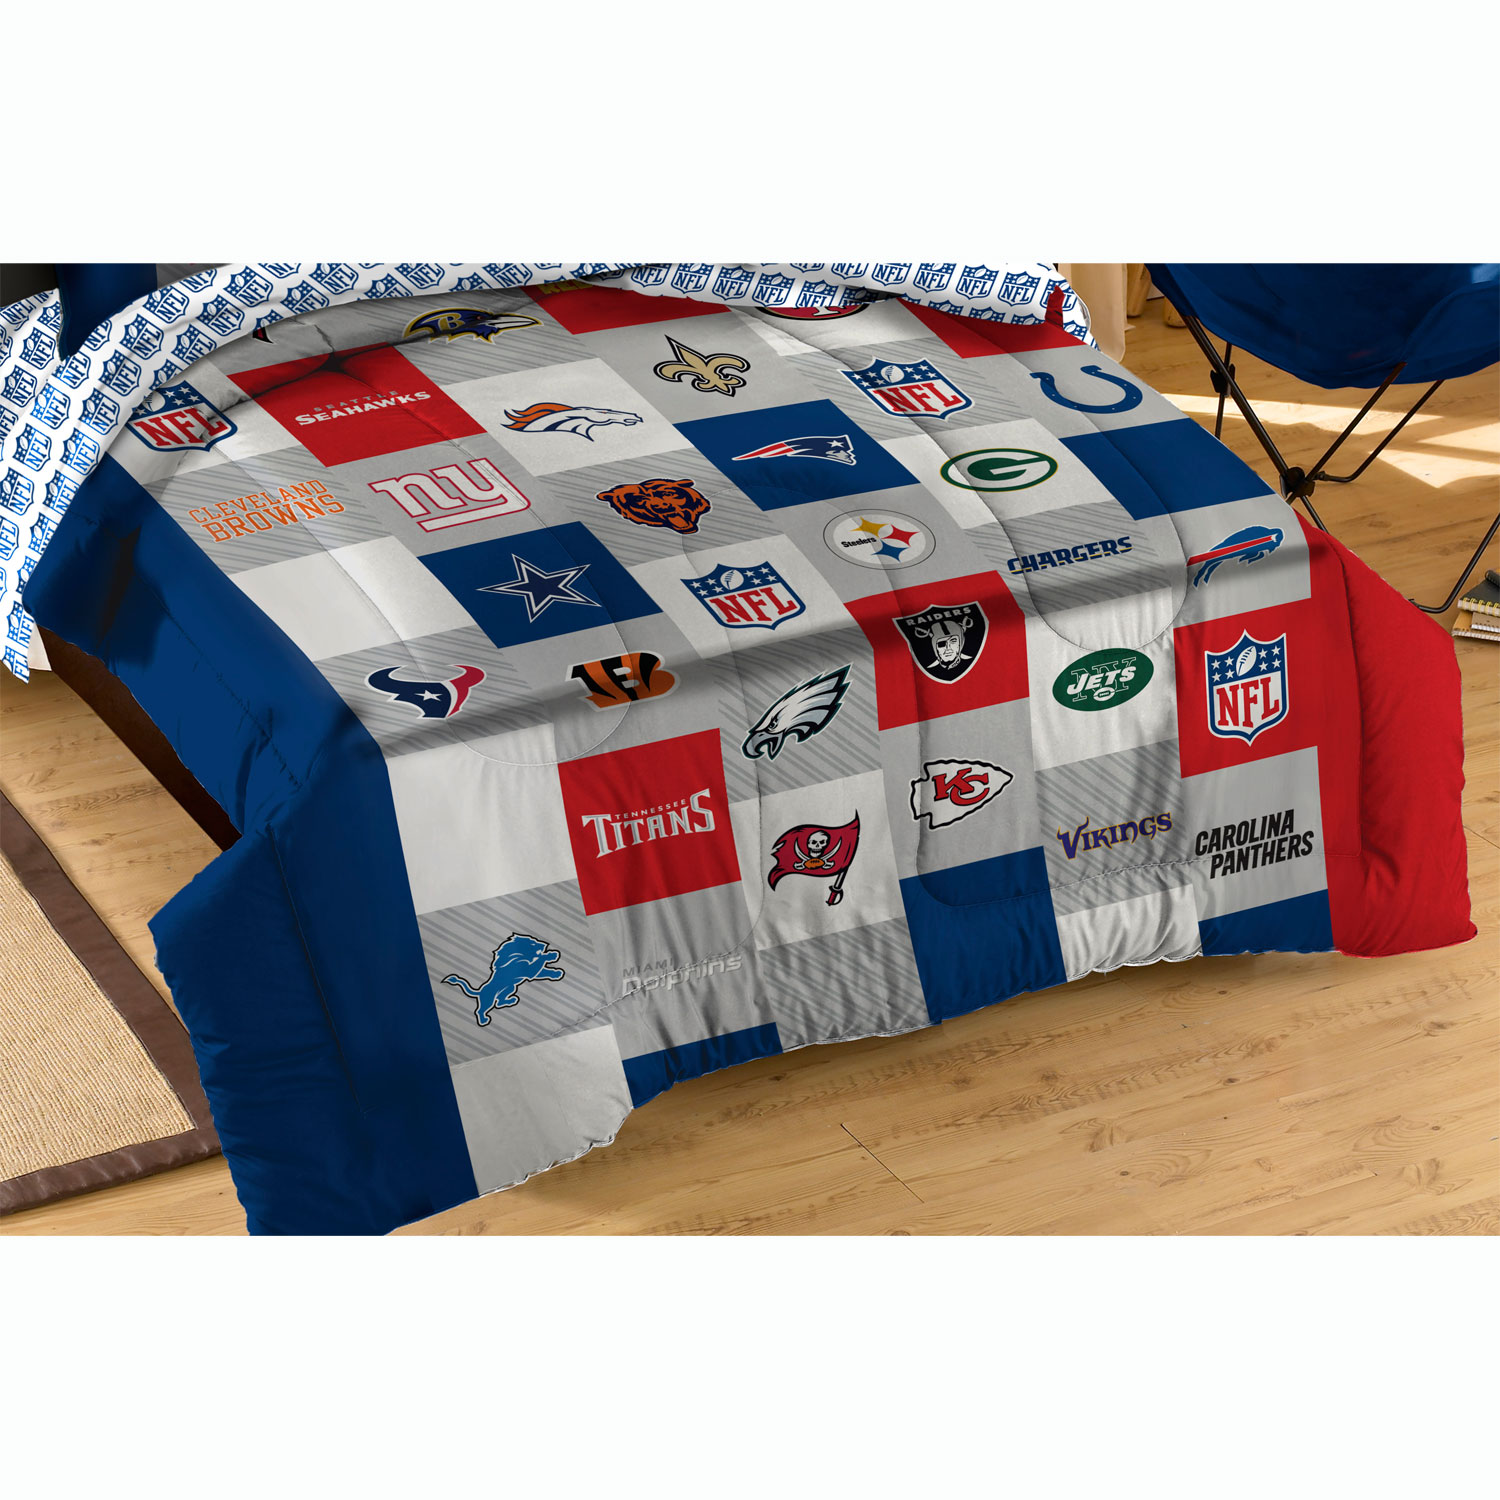 Nfl bedding for boys - Nfl League Twin Full Comforter Set All Teams Bedding Walmart